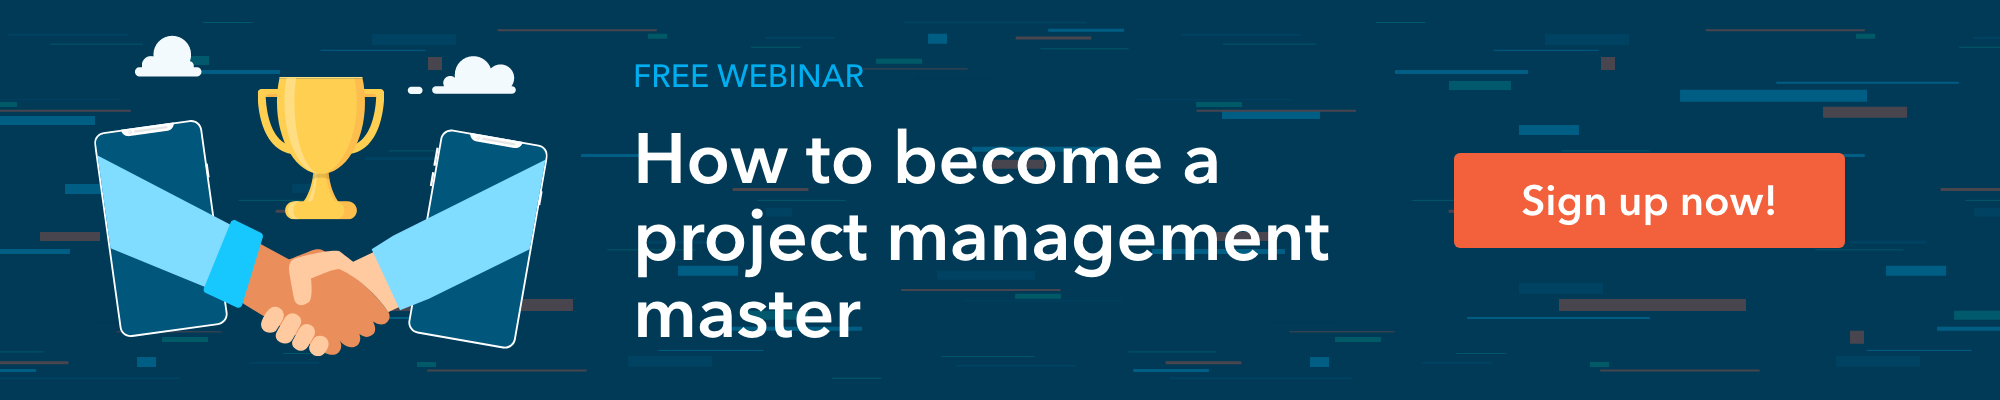 Project management master webinar